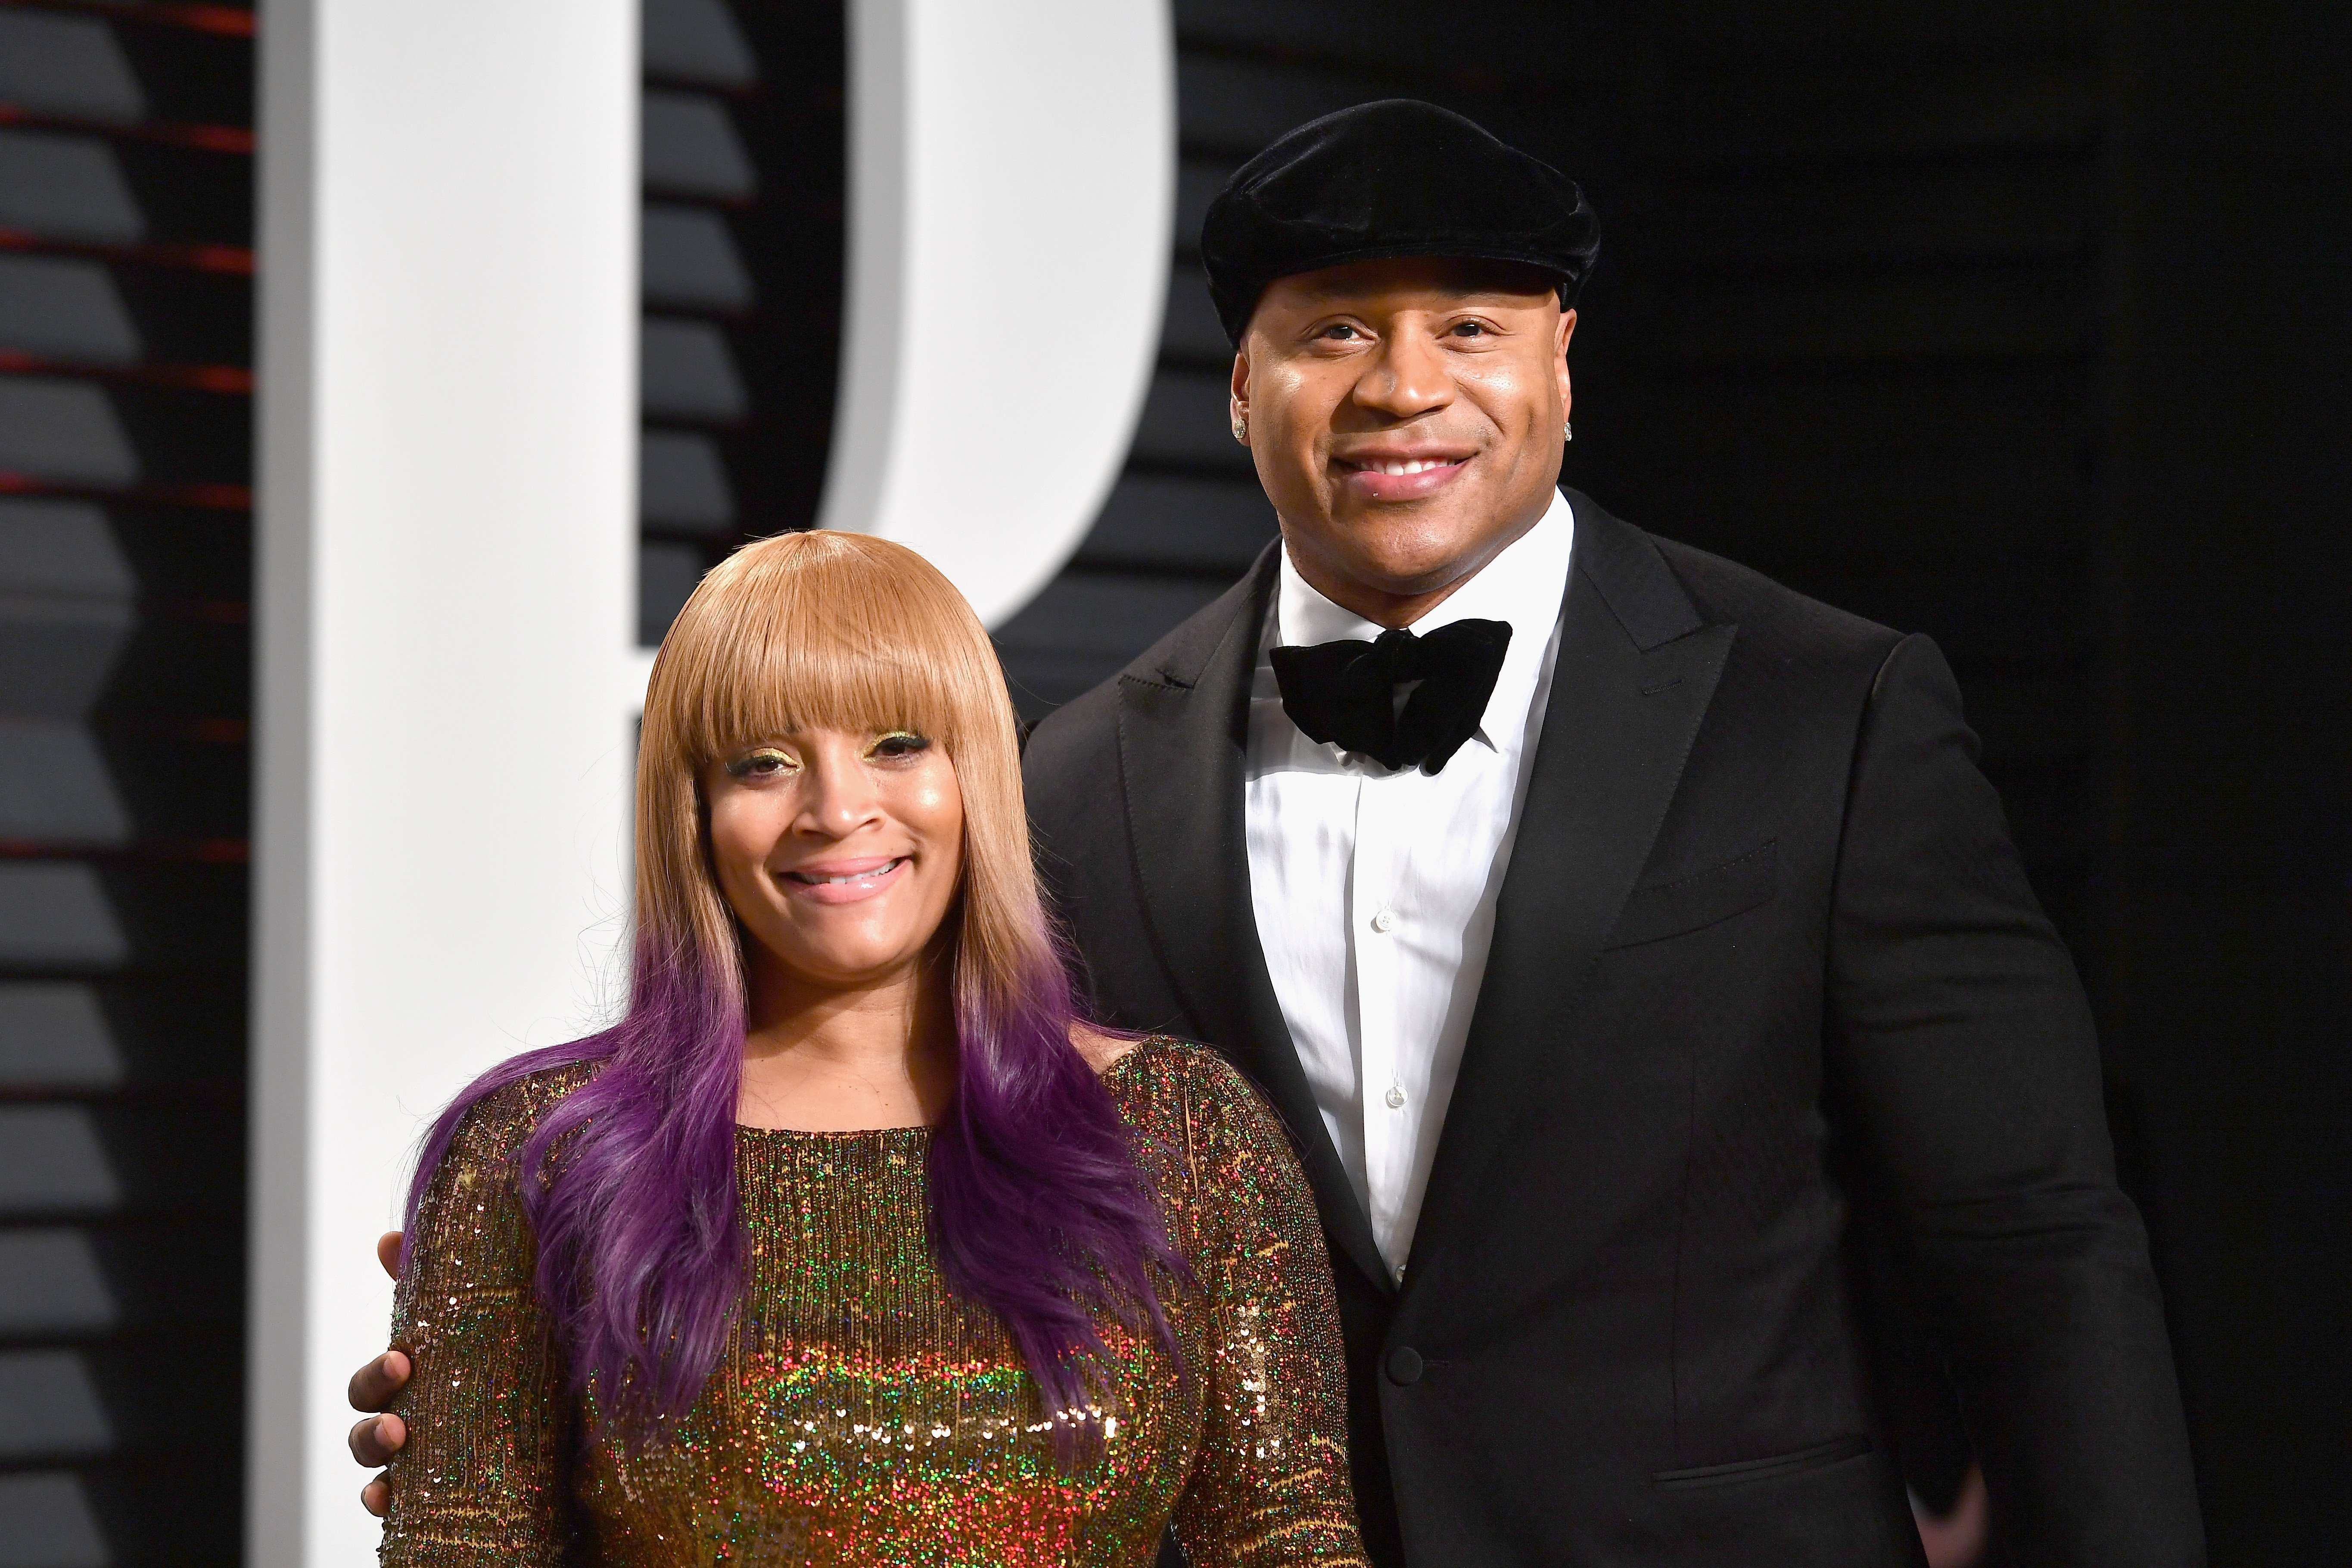 Simone Smith and LL Cool J at the Vanity Fair Oscar Party on February 26, 2017.   Source: Getty Images